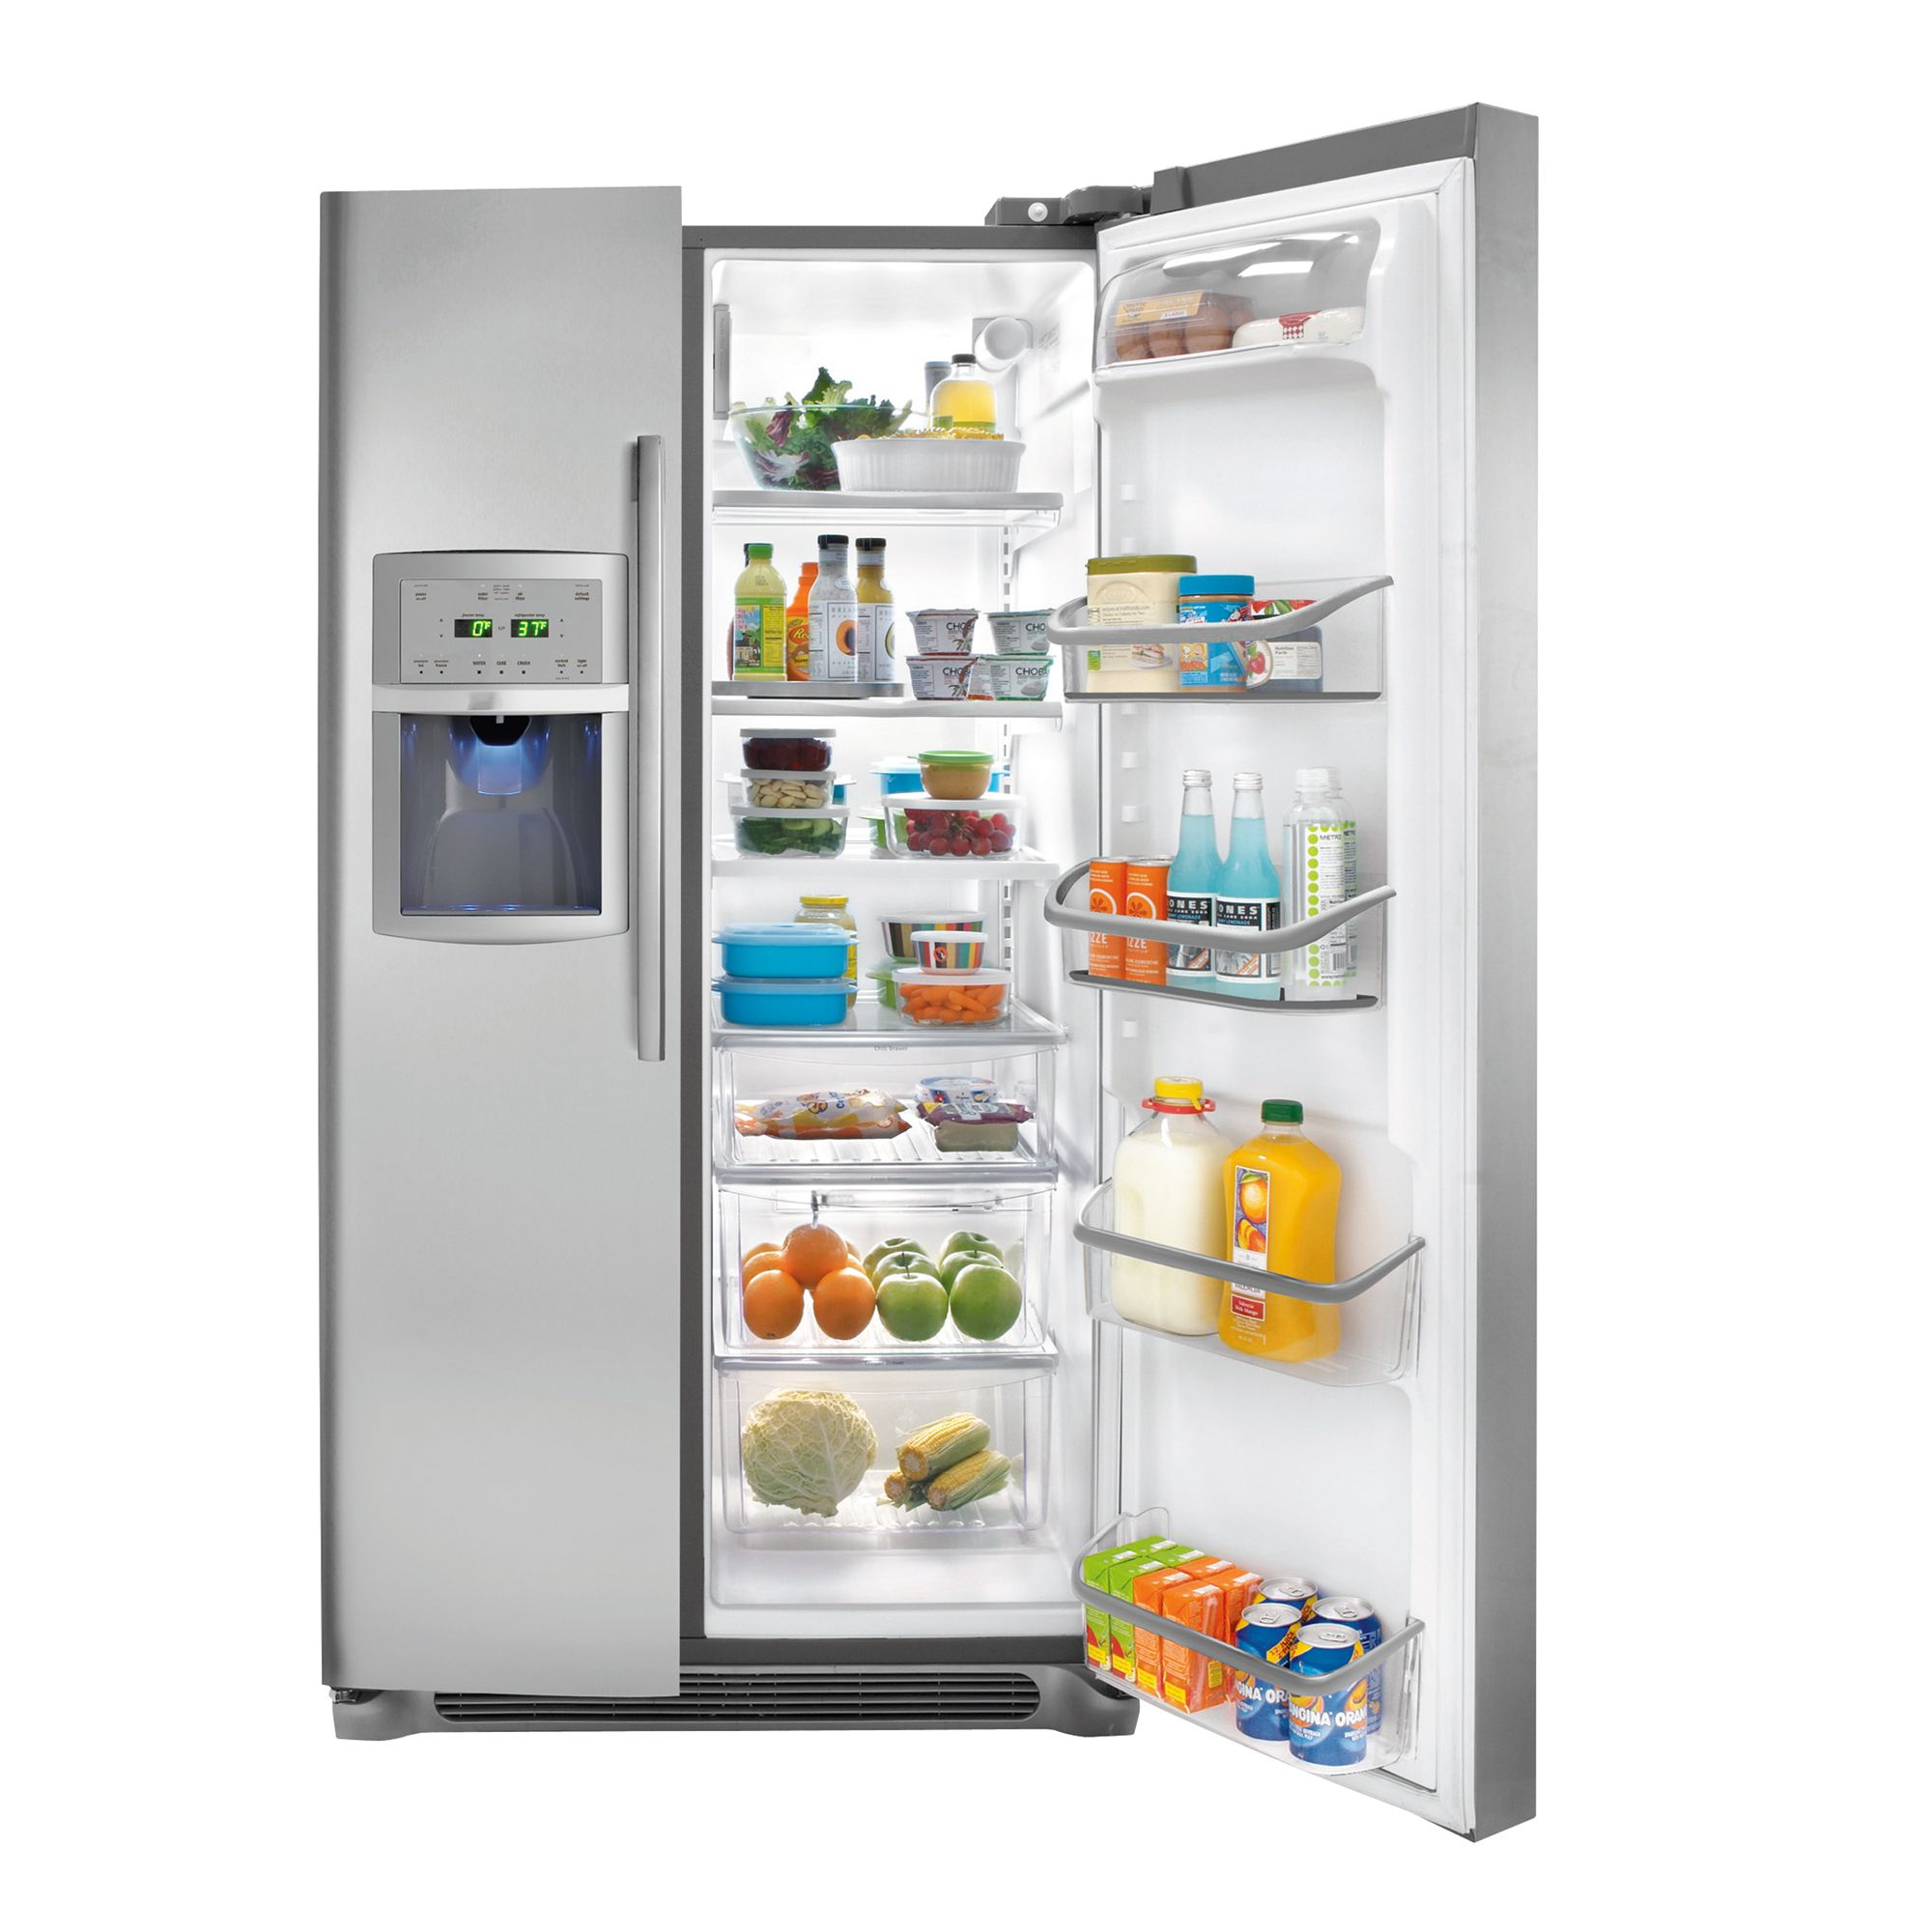 Frigidaire Professional Series 26.0 cu. ft. Side-by-Side Refrigerator